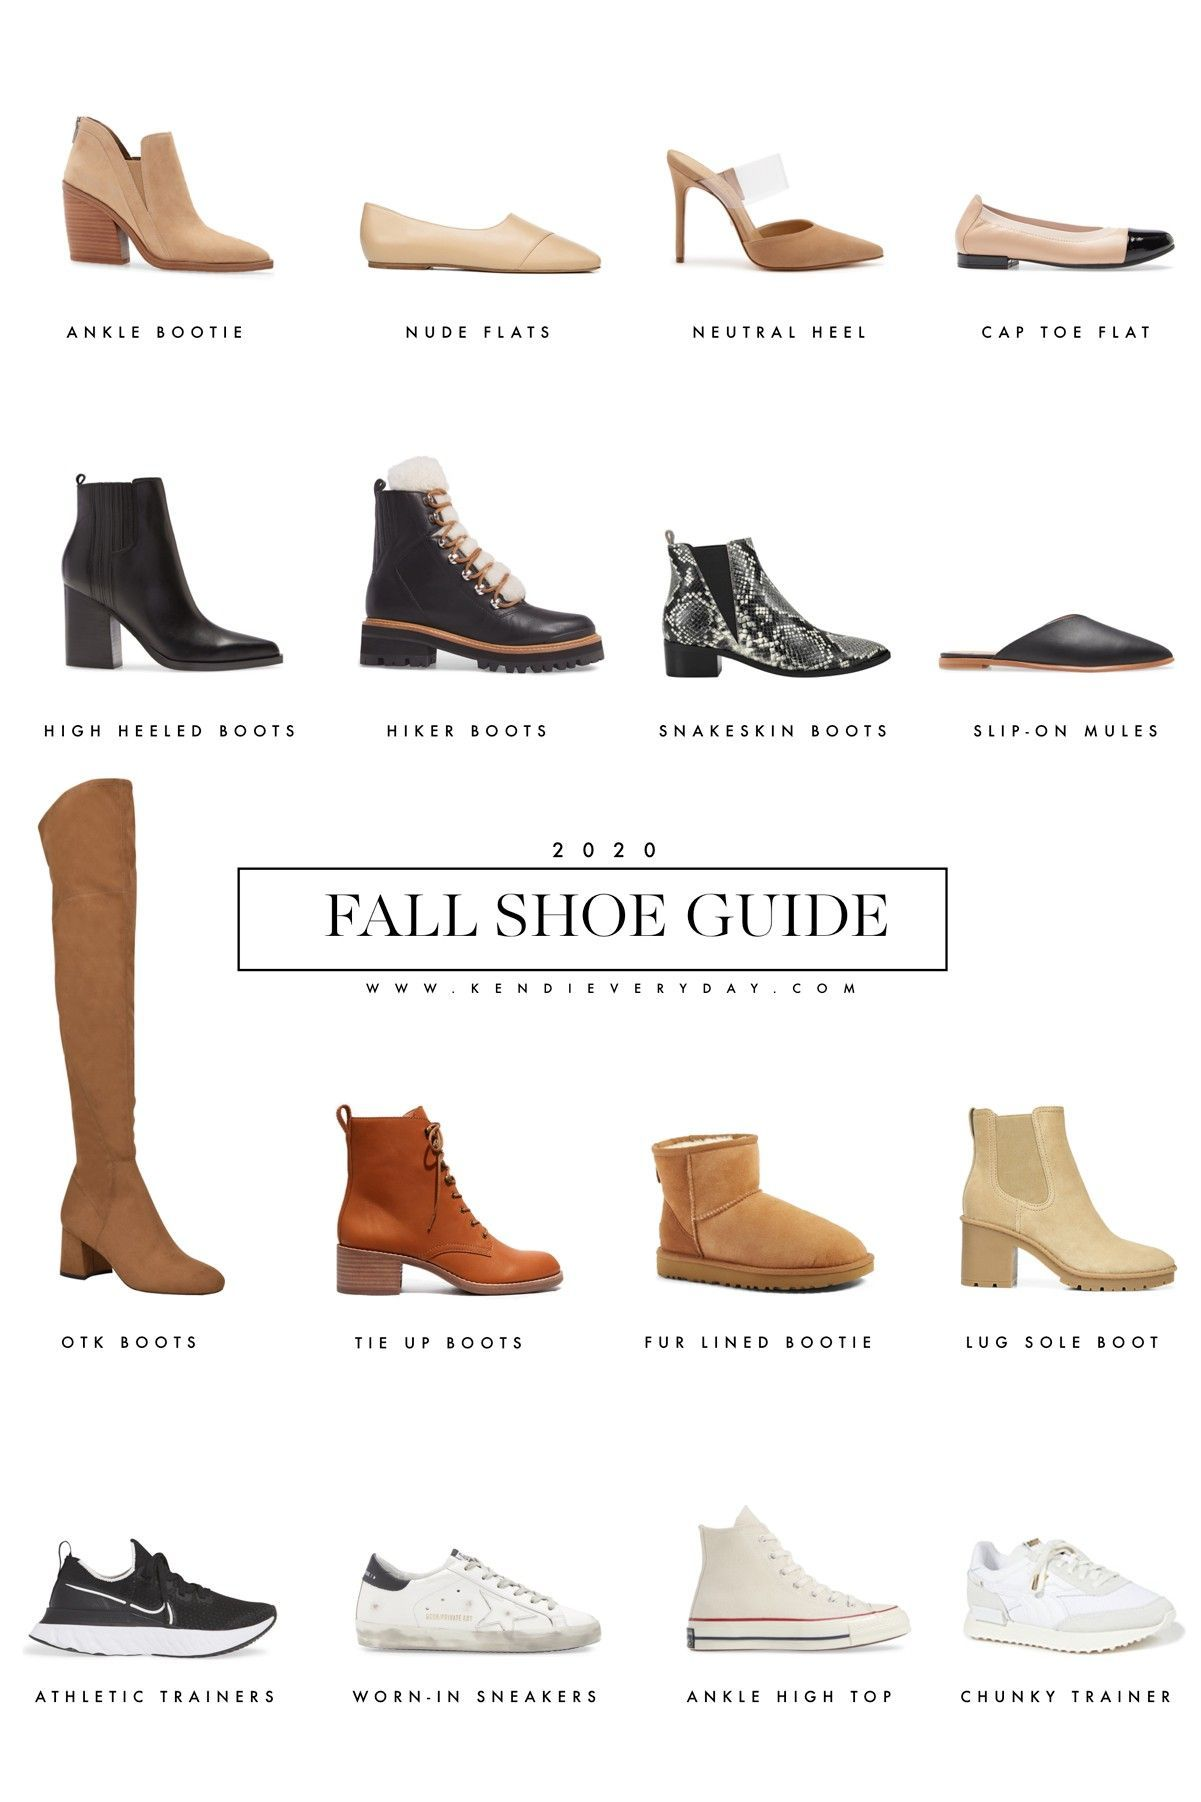 Fall Shoe Guide 2020 Kendi Everyday in 2020 Fall shoes